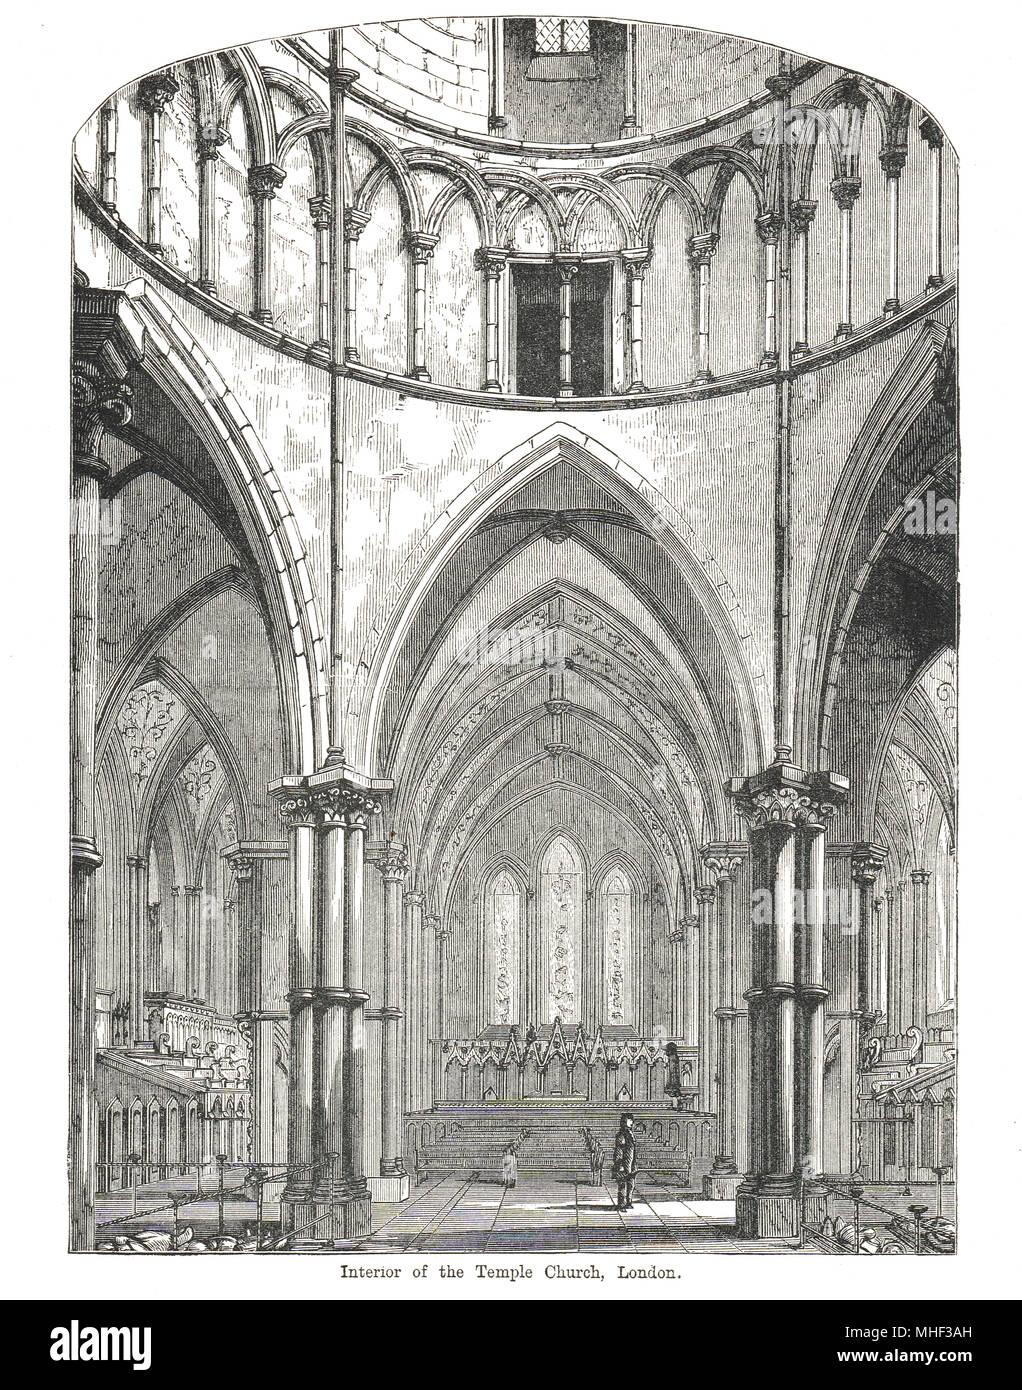 Interior of Temple Church, London, England. 19th Century illustration - Stock Image